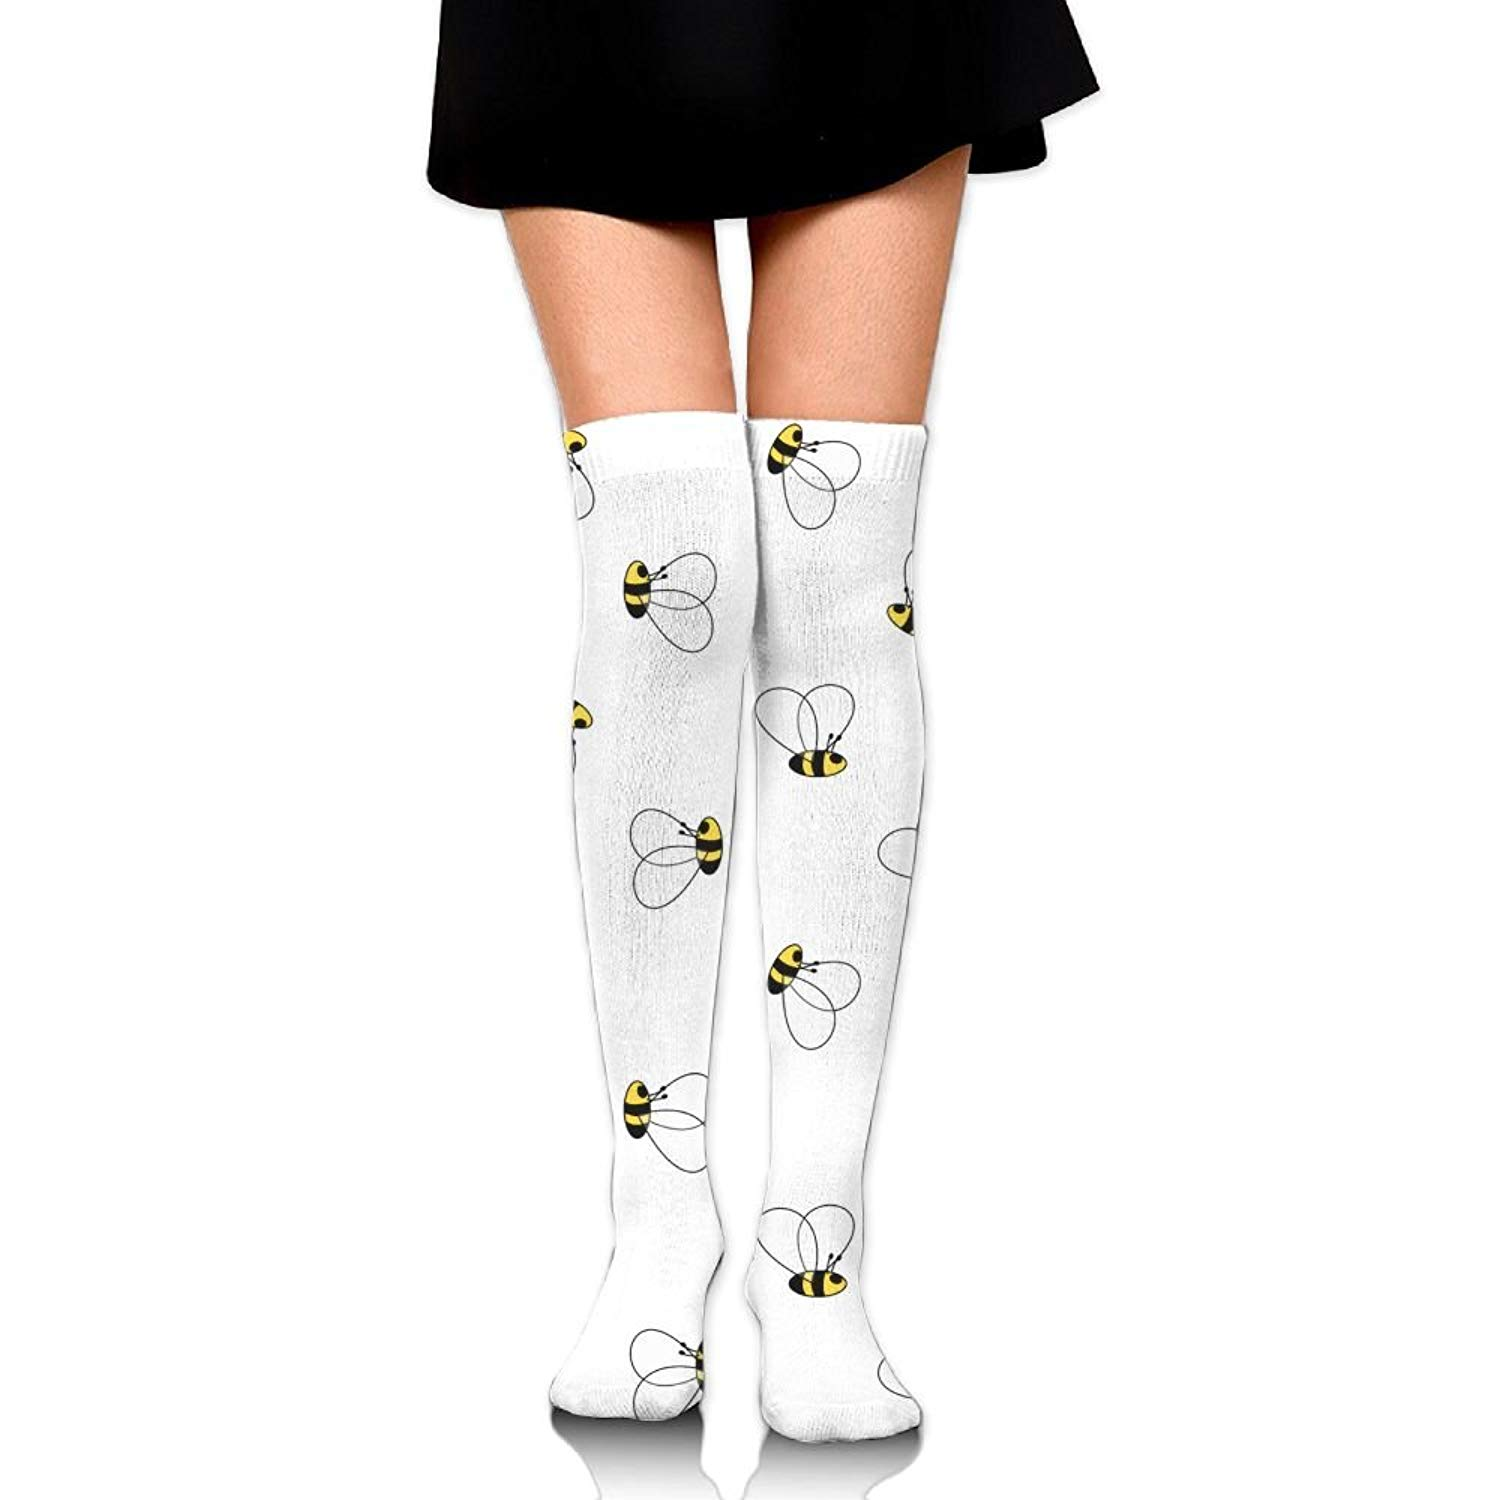 Zaqxsw Honeybee Cute Women Cool Thigh High Socks Thermal Socks For Ladies